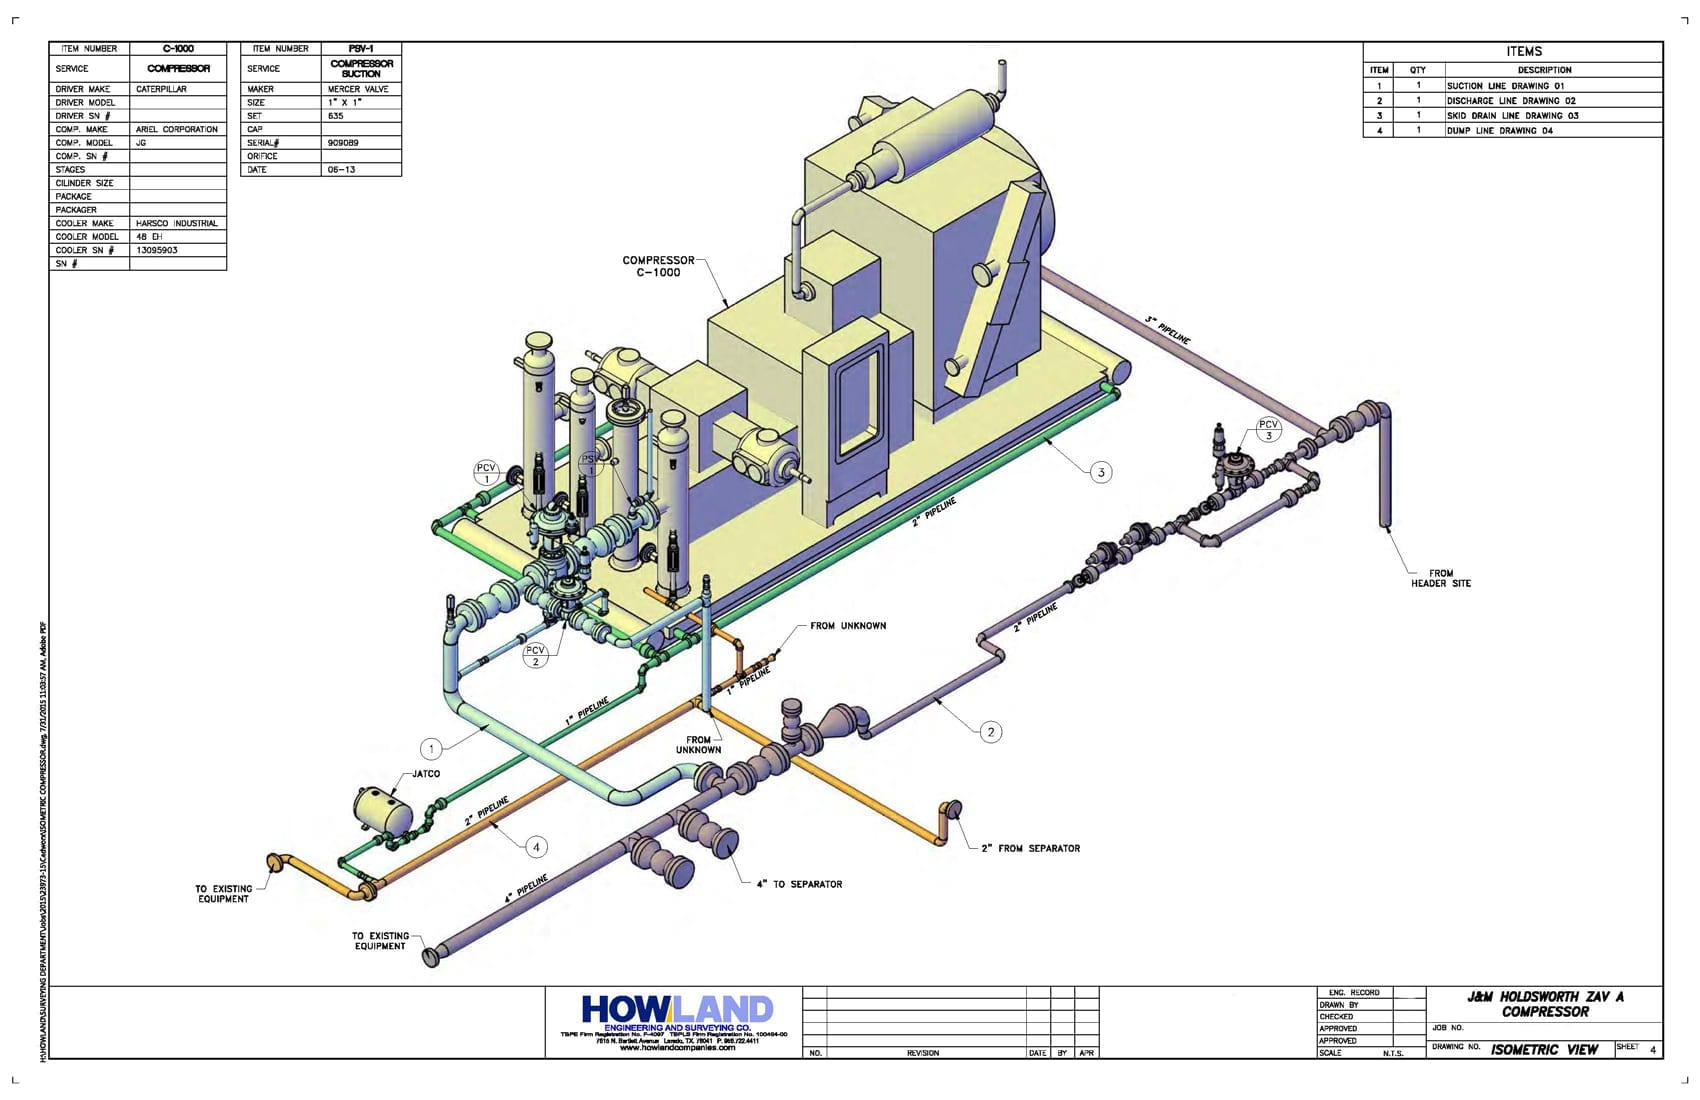 Services howland companies services image pooptronica Image collections